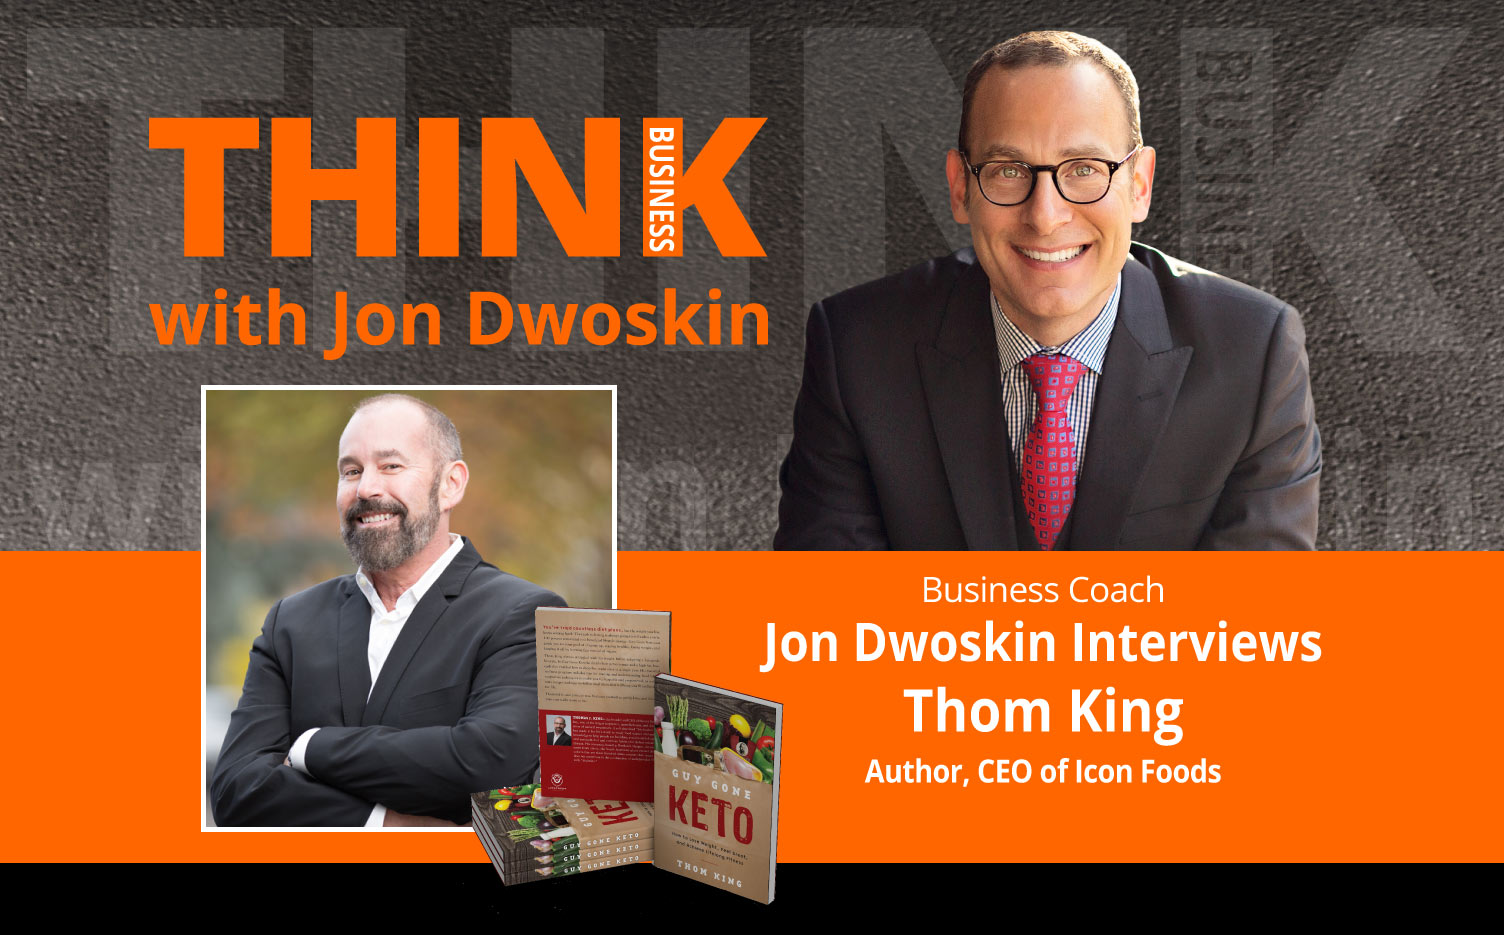 THINK Business Podcast: Jon Dwoskin Interviews Thom King, Author, CEO of Icon Foods